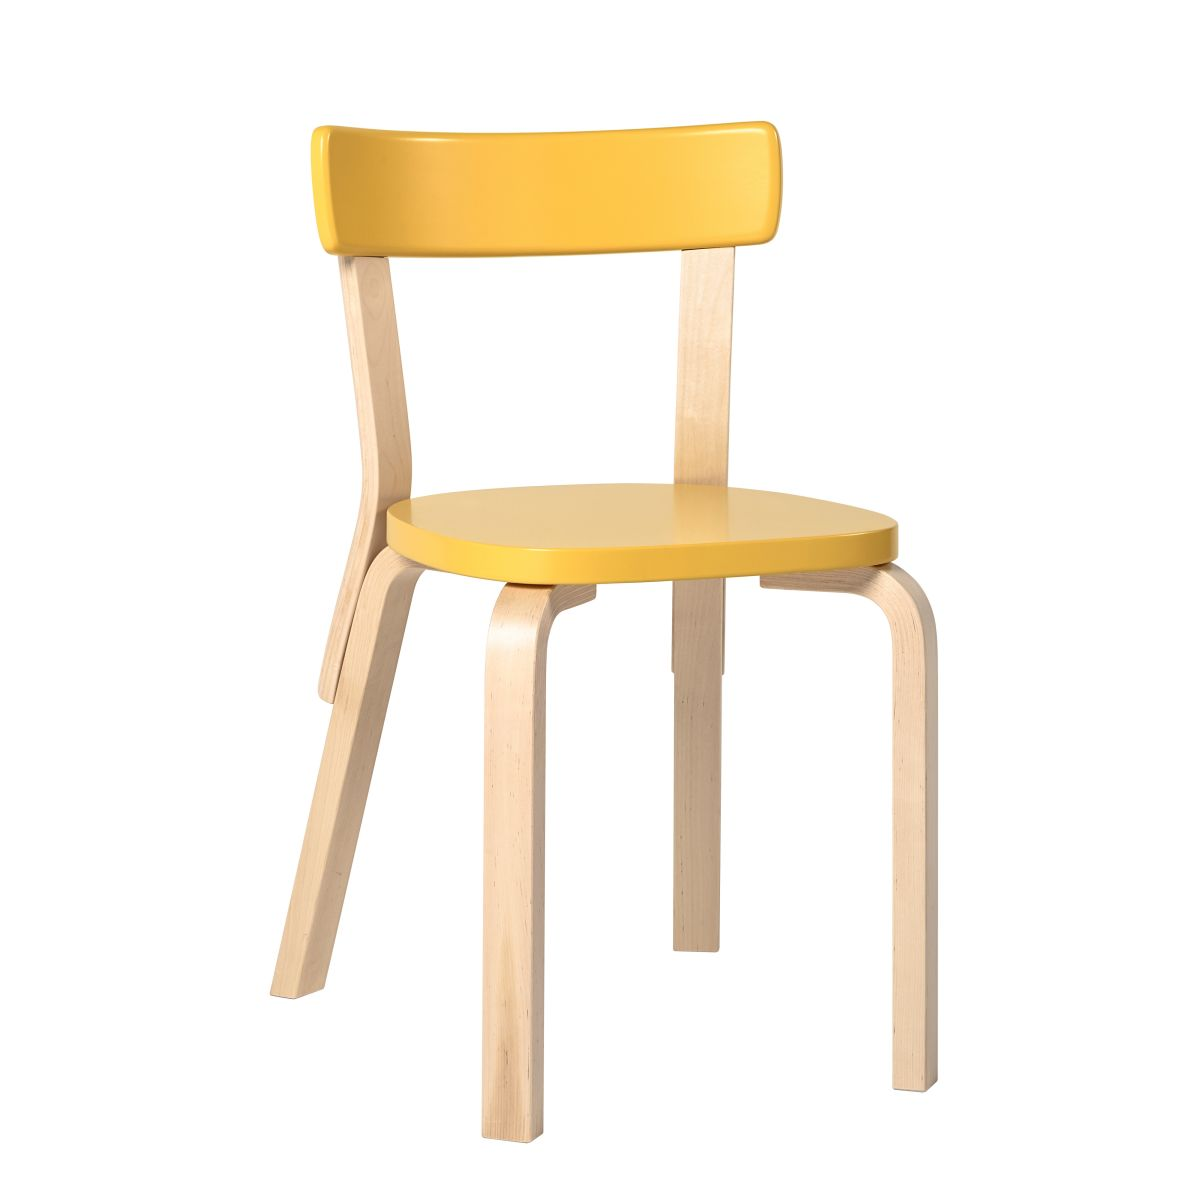 prevnext chair yellow main chippendale wisteria productinfo chinese